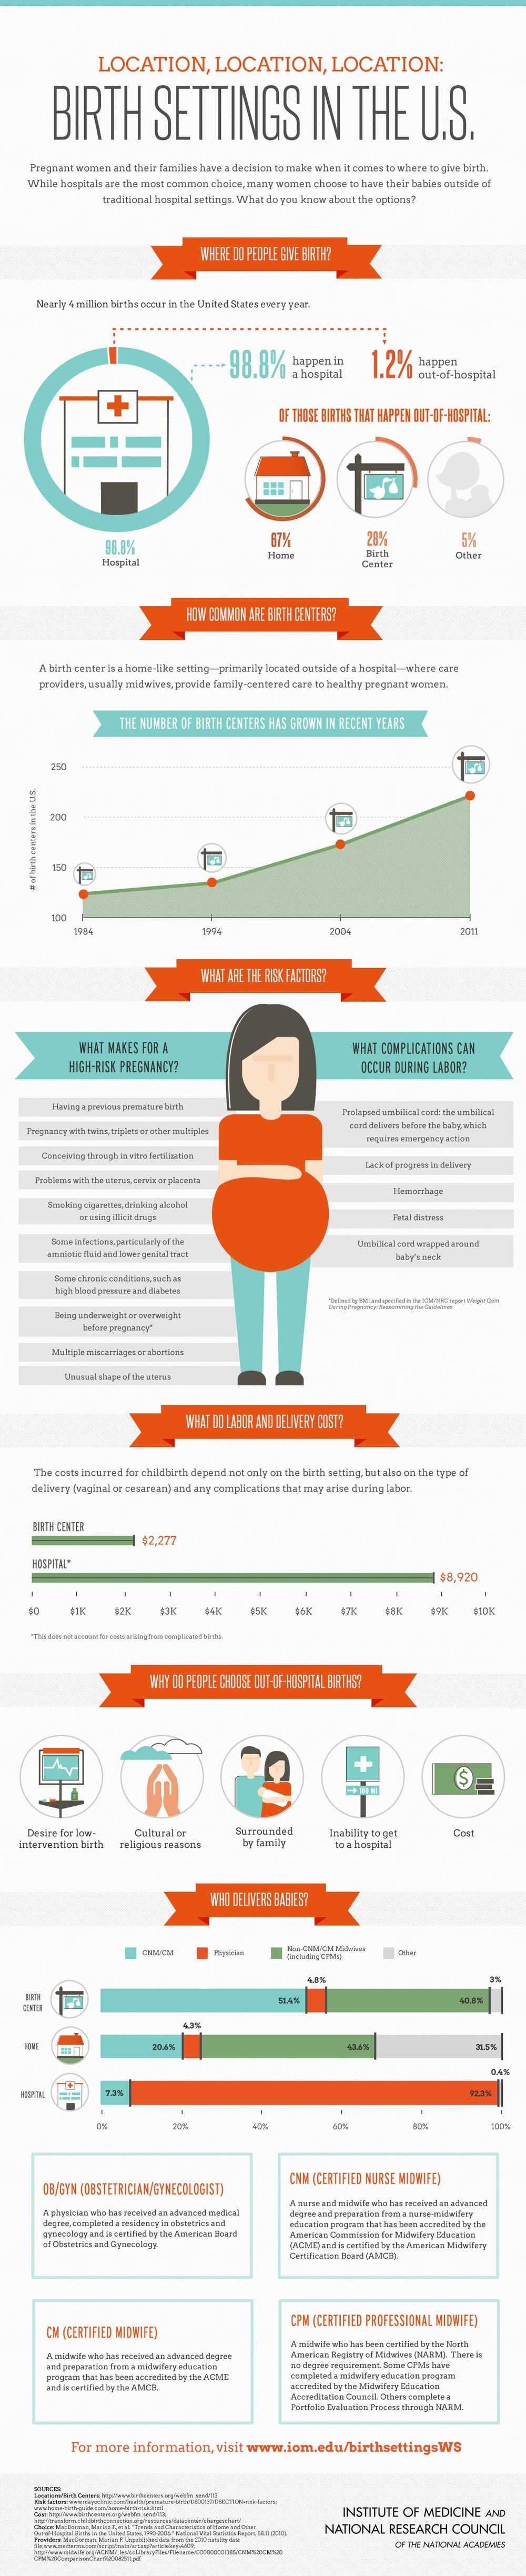 Birth settings in the U.S: options for birth #infographic